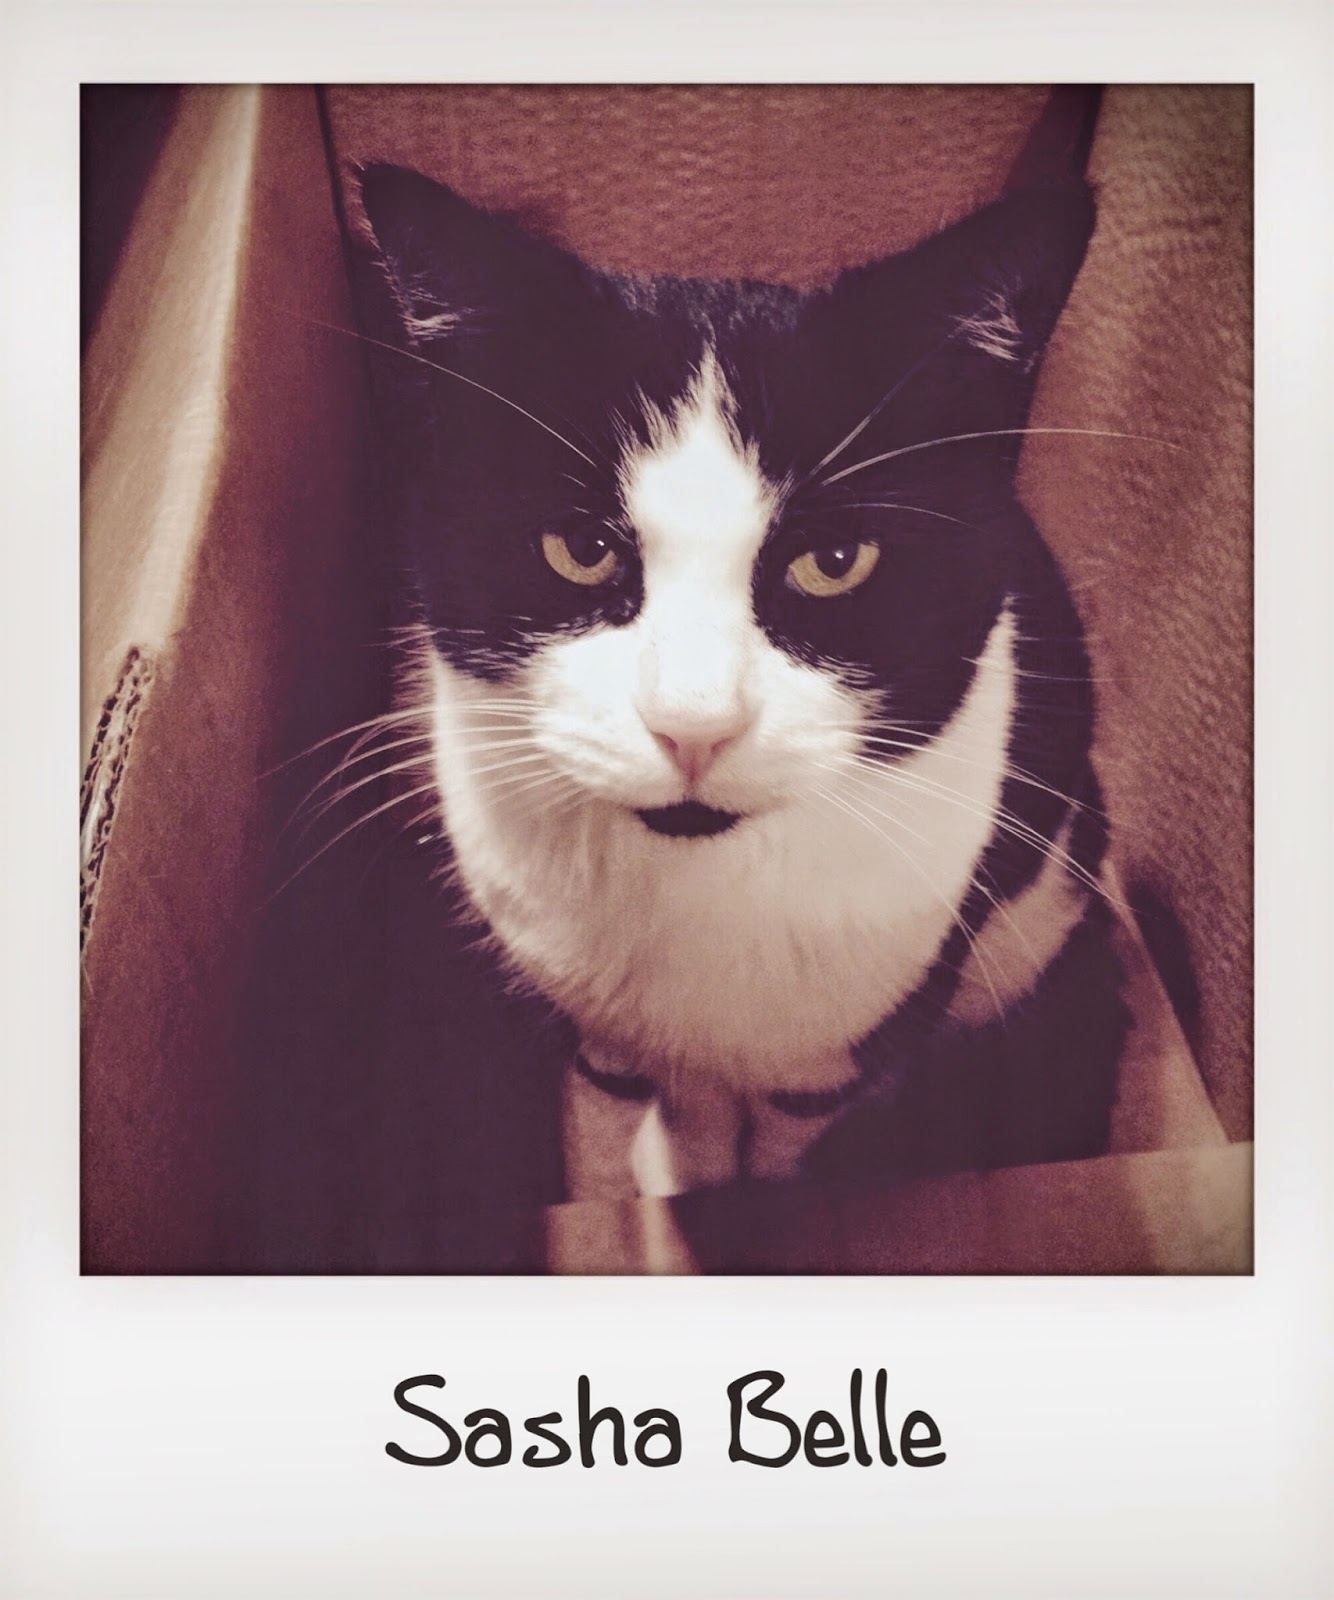 Miss Sasha Belle